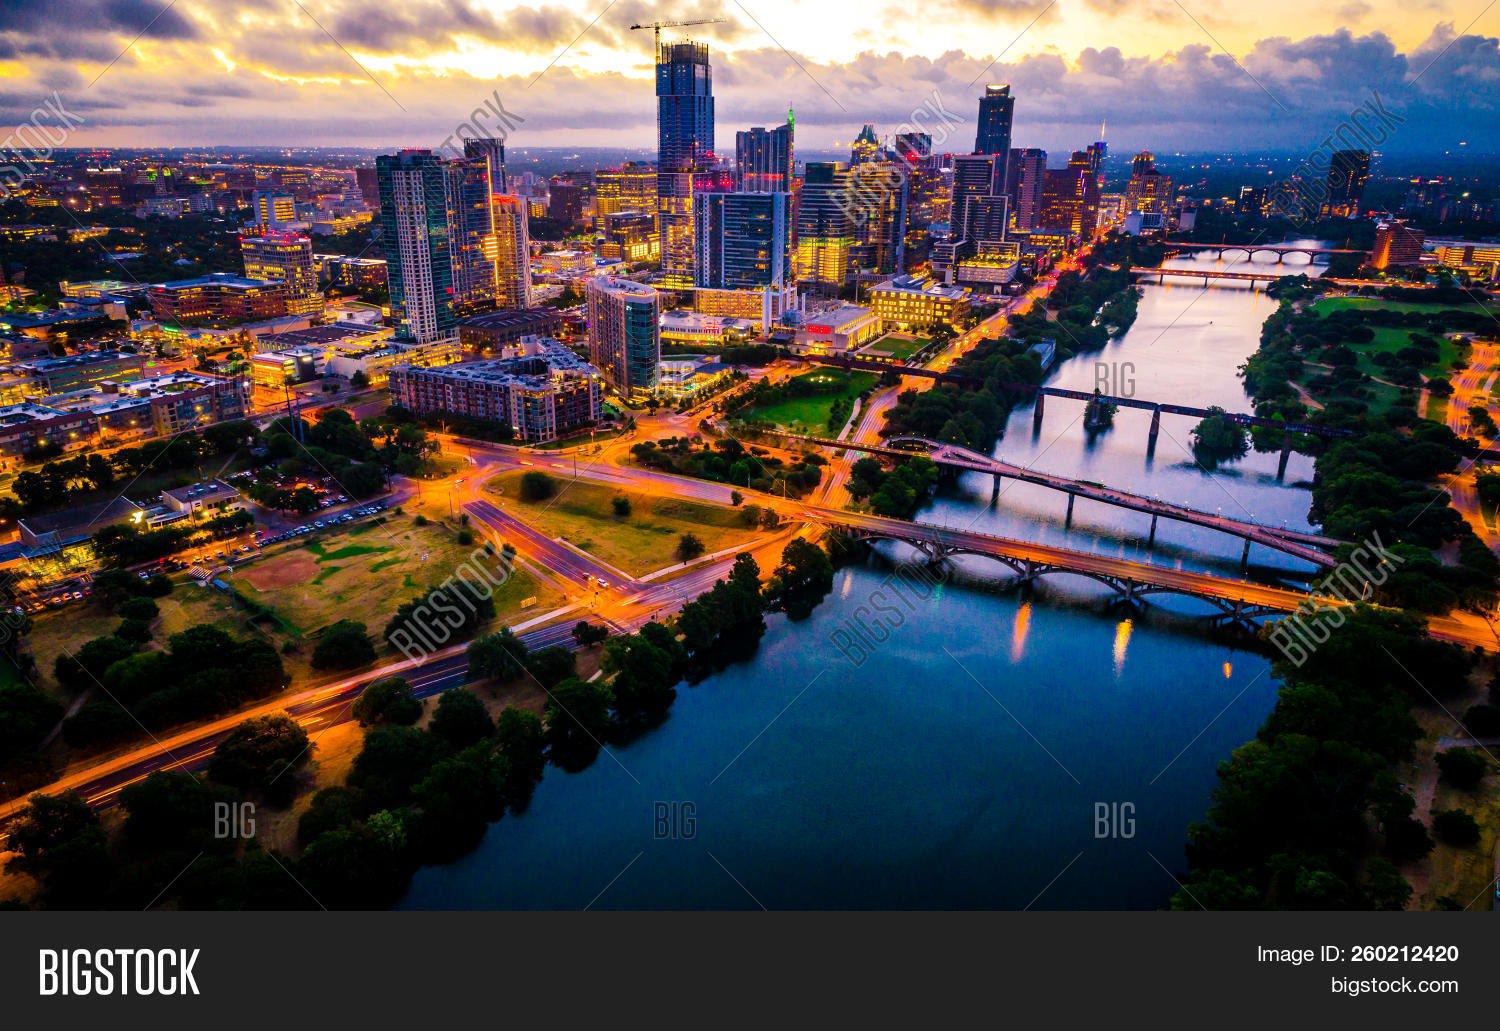 Aerial,Austin,Cityscape,Dawn,Downtown,Lake,Skyline,Texas,Town,and,as,at,bridges,capital,city,drone,glow,hits,illuminated,in,lights,of,on,over,right,sunrise,the,view,with